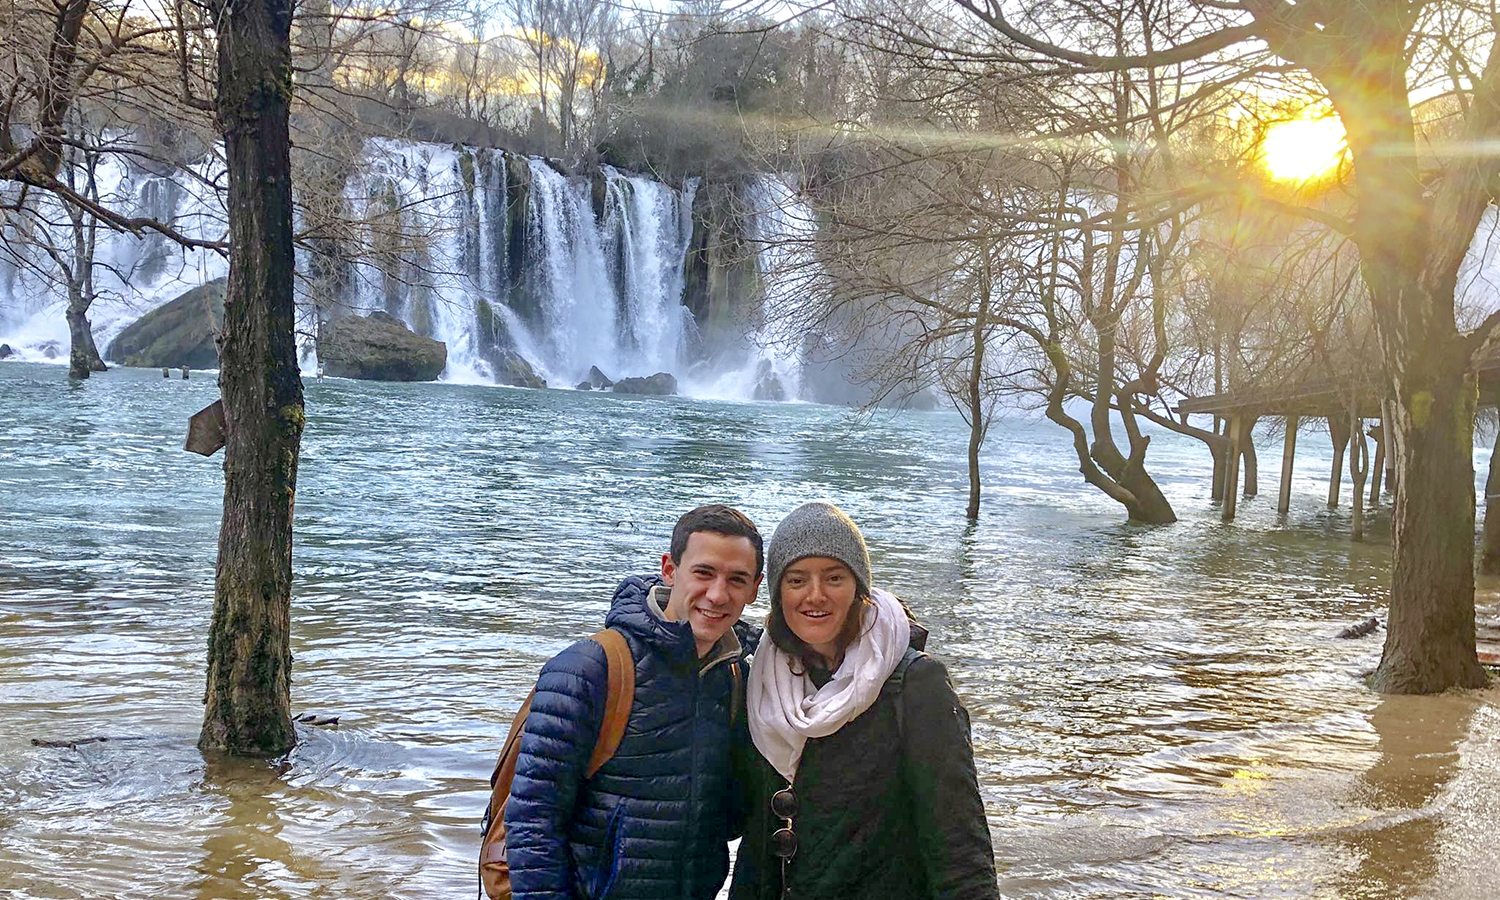 Michael DeRosa '16 and Alice Gormley '15, program leaders for the global youth education company Rustic Pathways, pose in Croatia. The pair are leading an abroad program for high school students through the Balkans region.